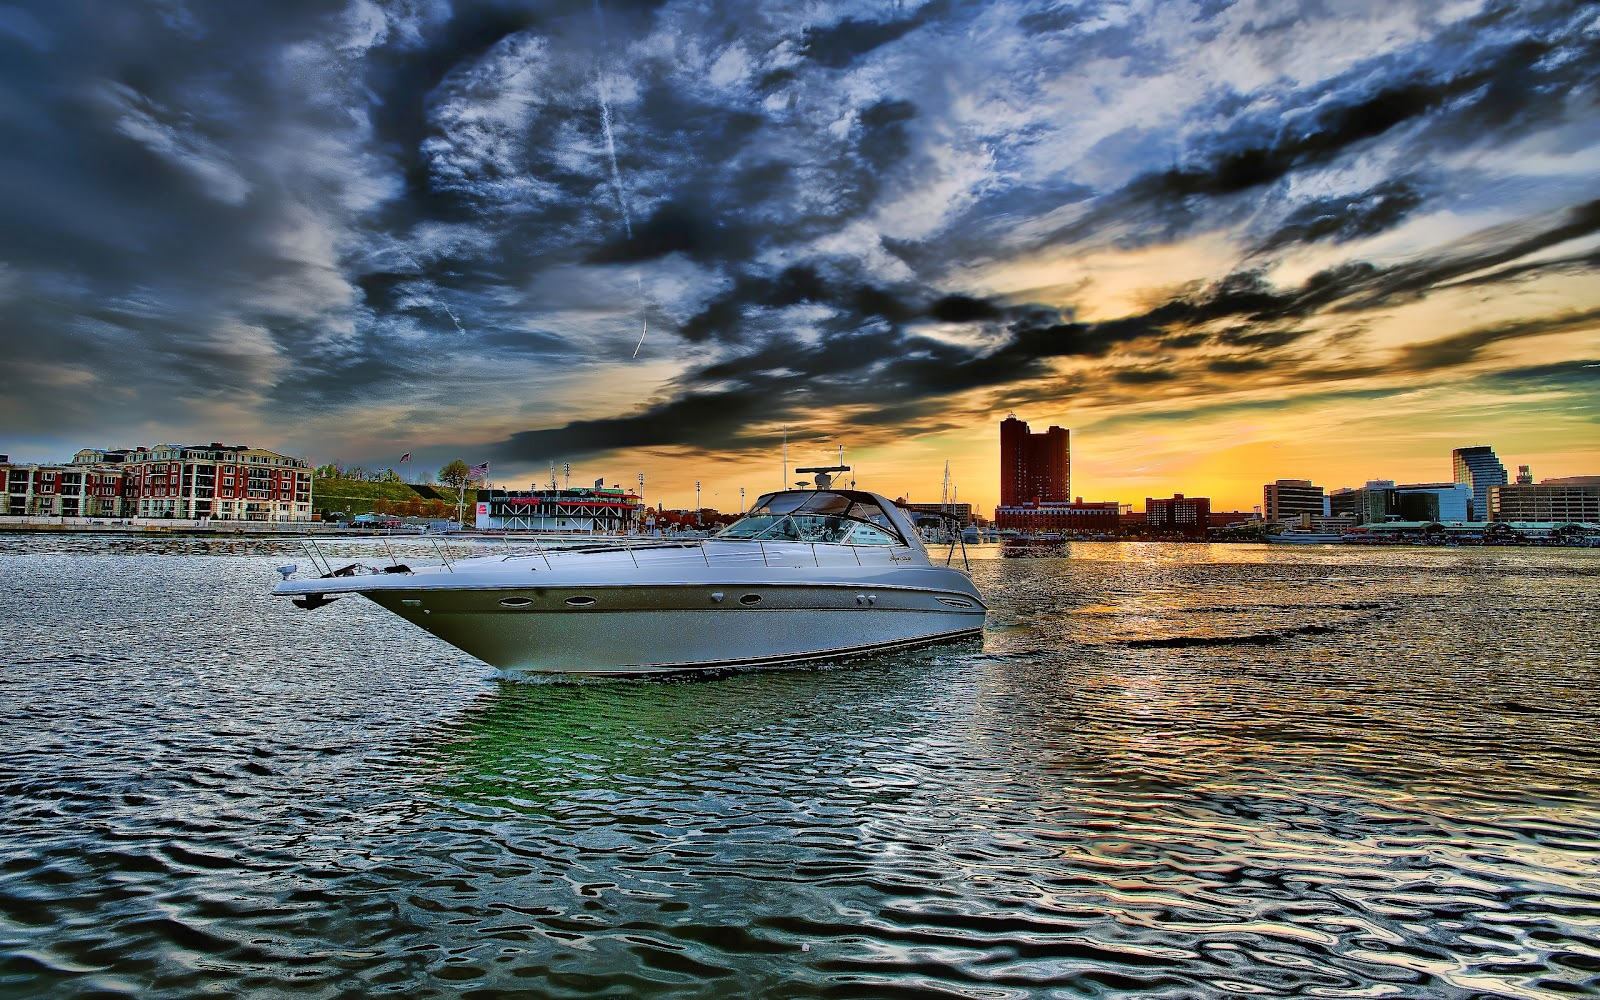 http://2.bp.blogspot.com/-h29W0_fjMO0/UEhh3QZ_wNI/AAAAAAAABBg/L0epXJrm7U8/s1600/leaving-the-city-behind-boat-full-HD-nature-background-wallpaper-for-laptop-widescreen.jpg